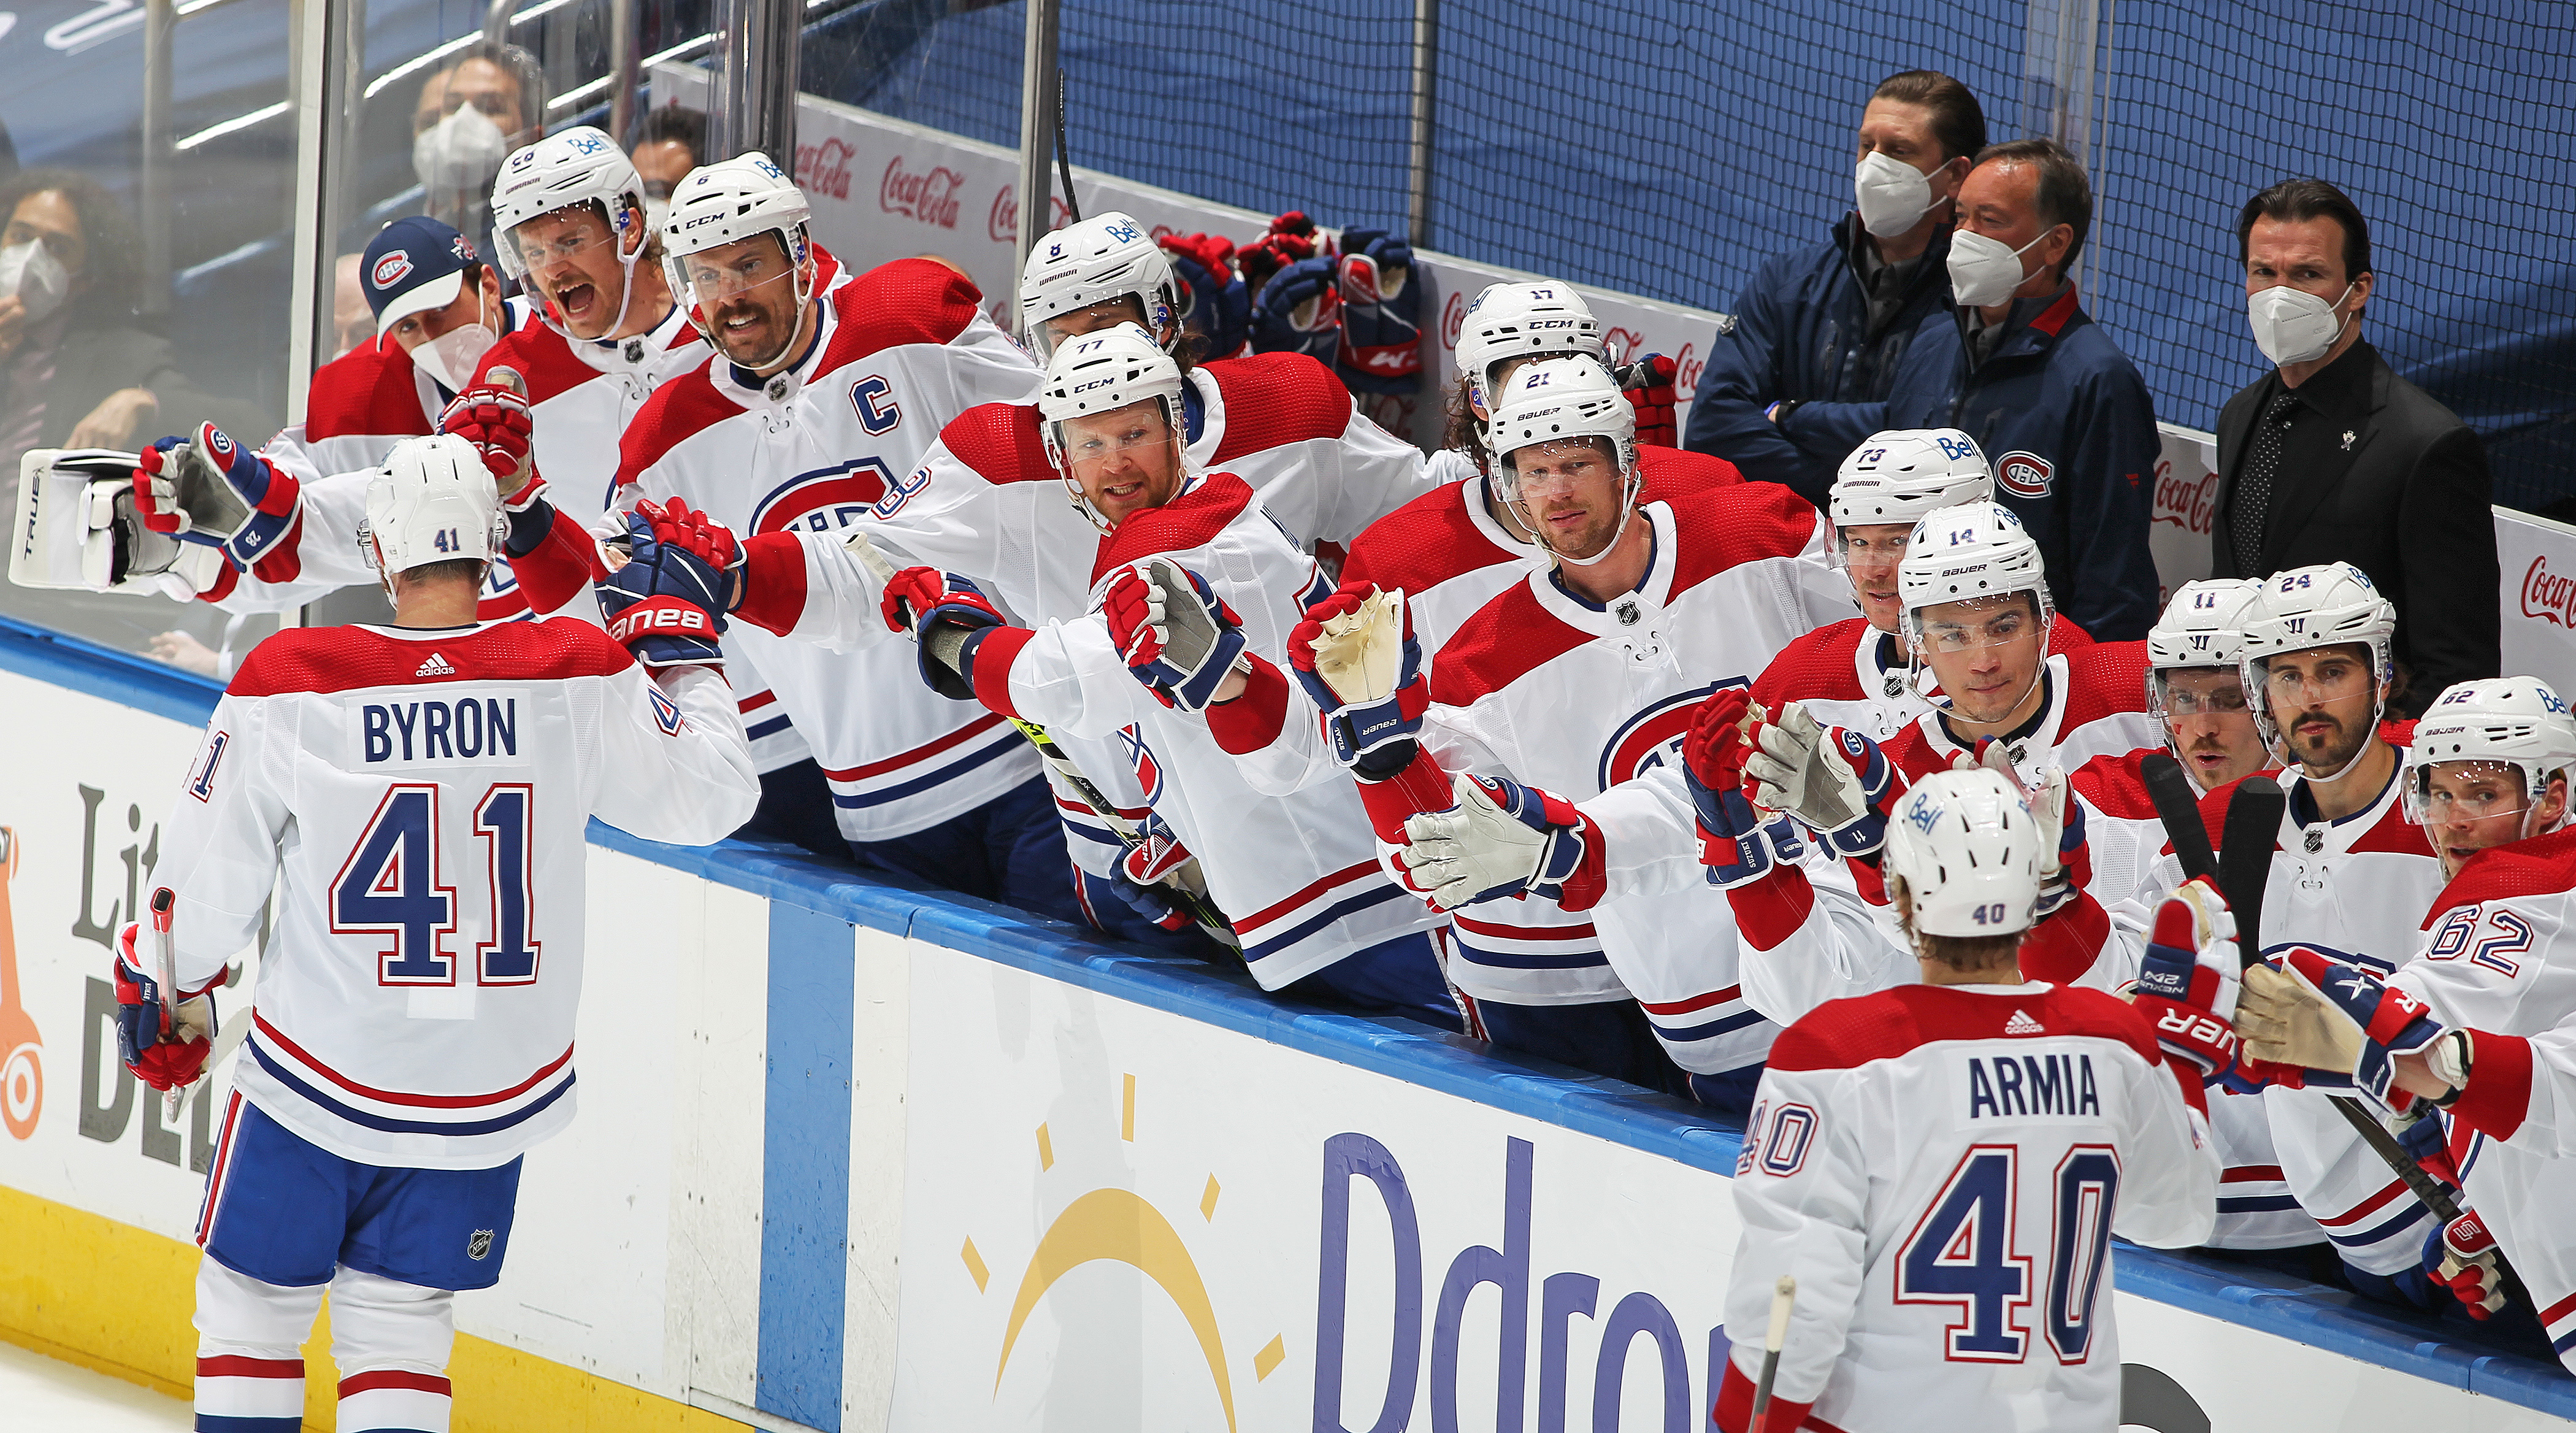 Montreal Canadiens v Toronto Maple Leafs - Game One